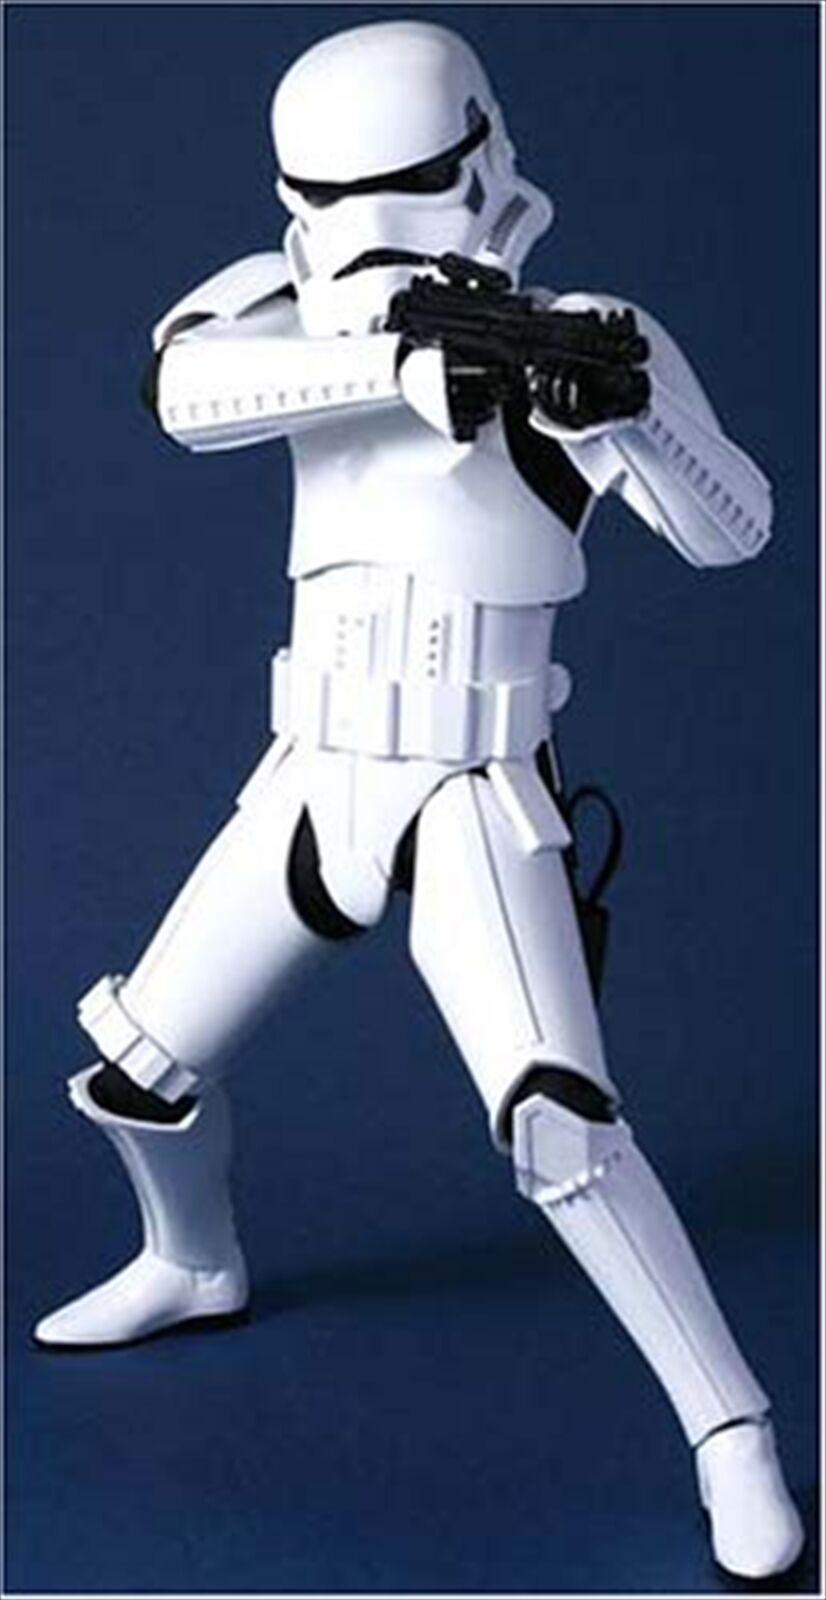 Medicom RAH Real Action Heroes Star Wars Stormtrooper 1 6 Action Figure